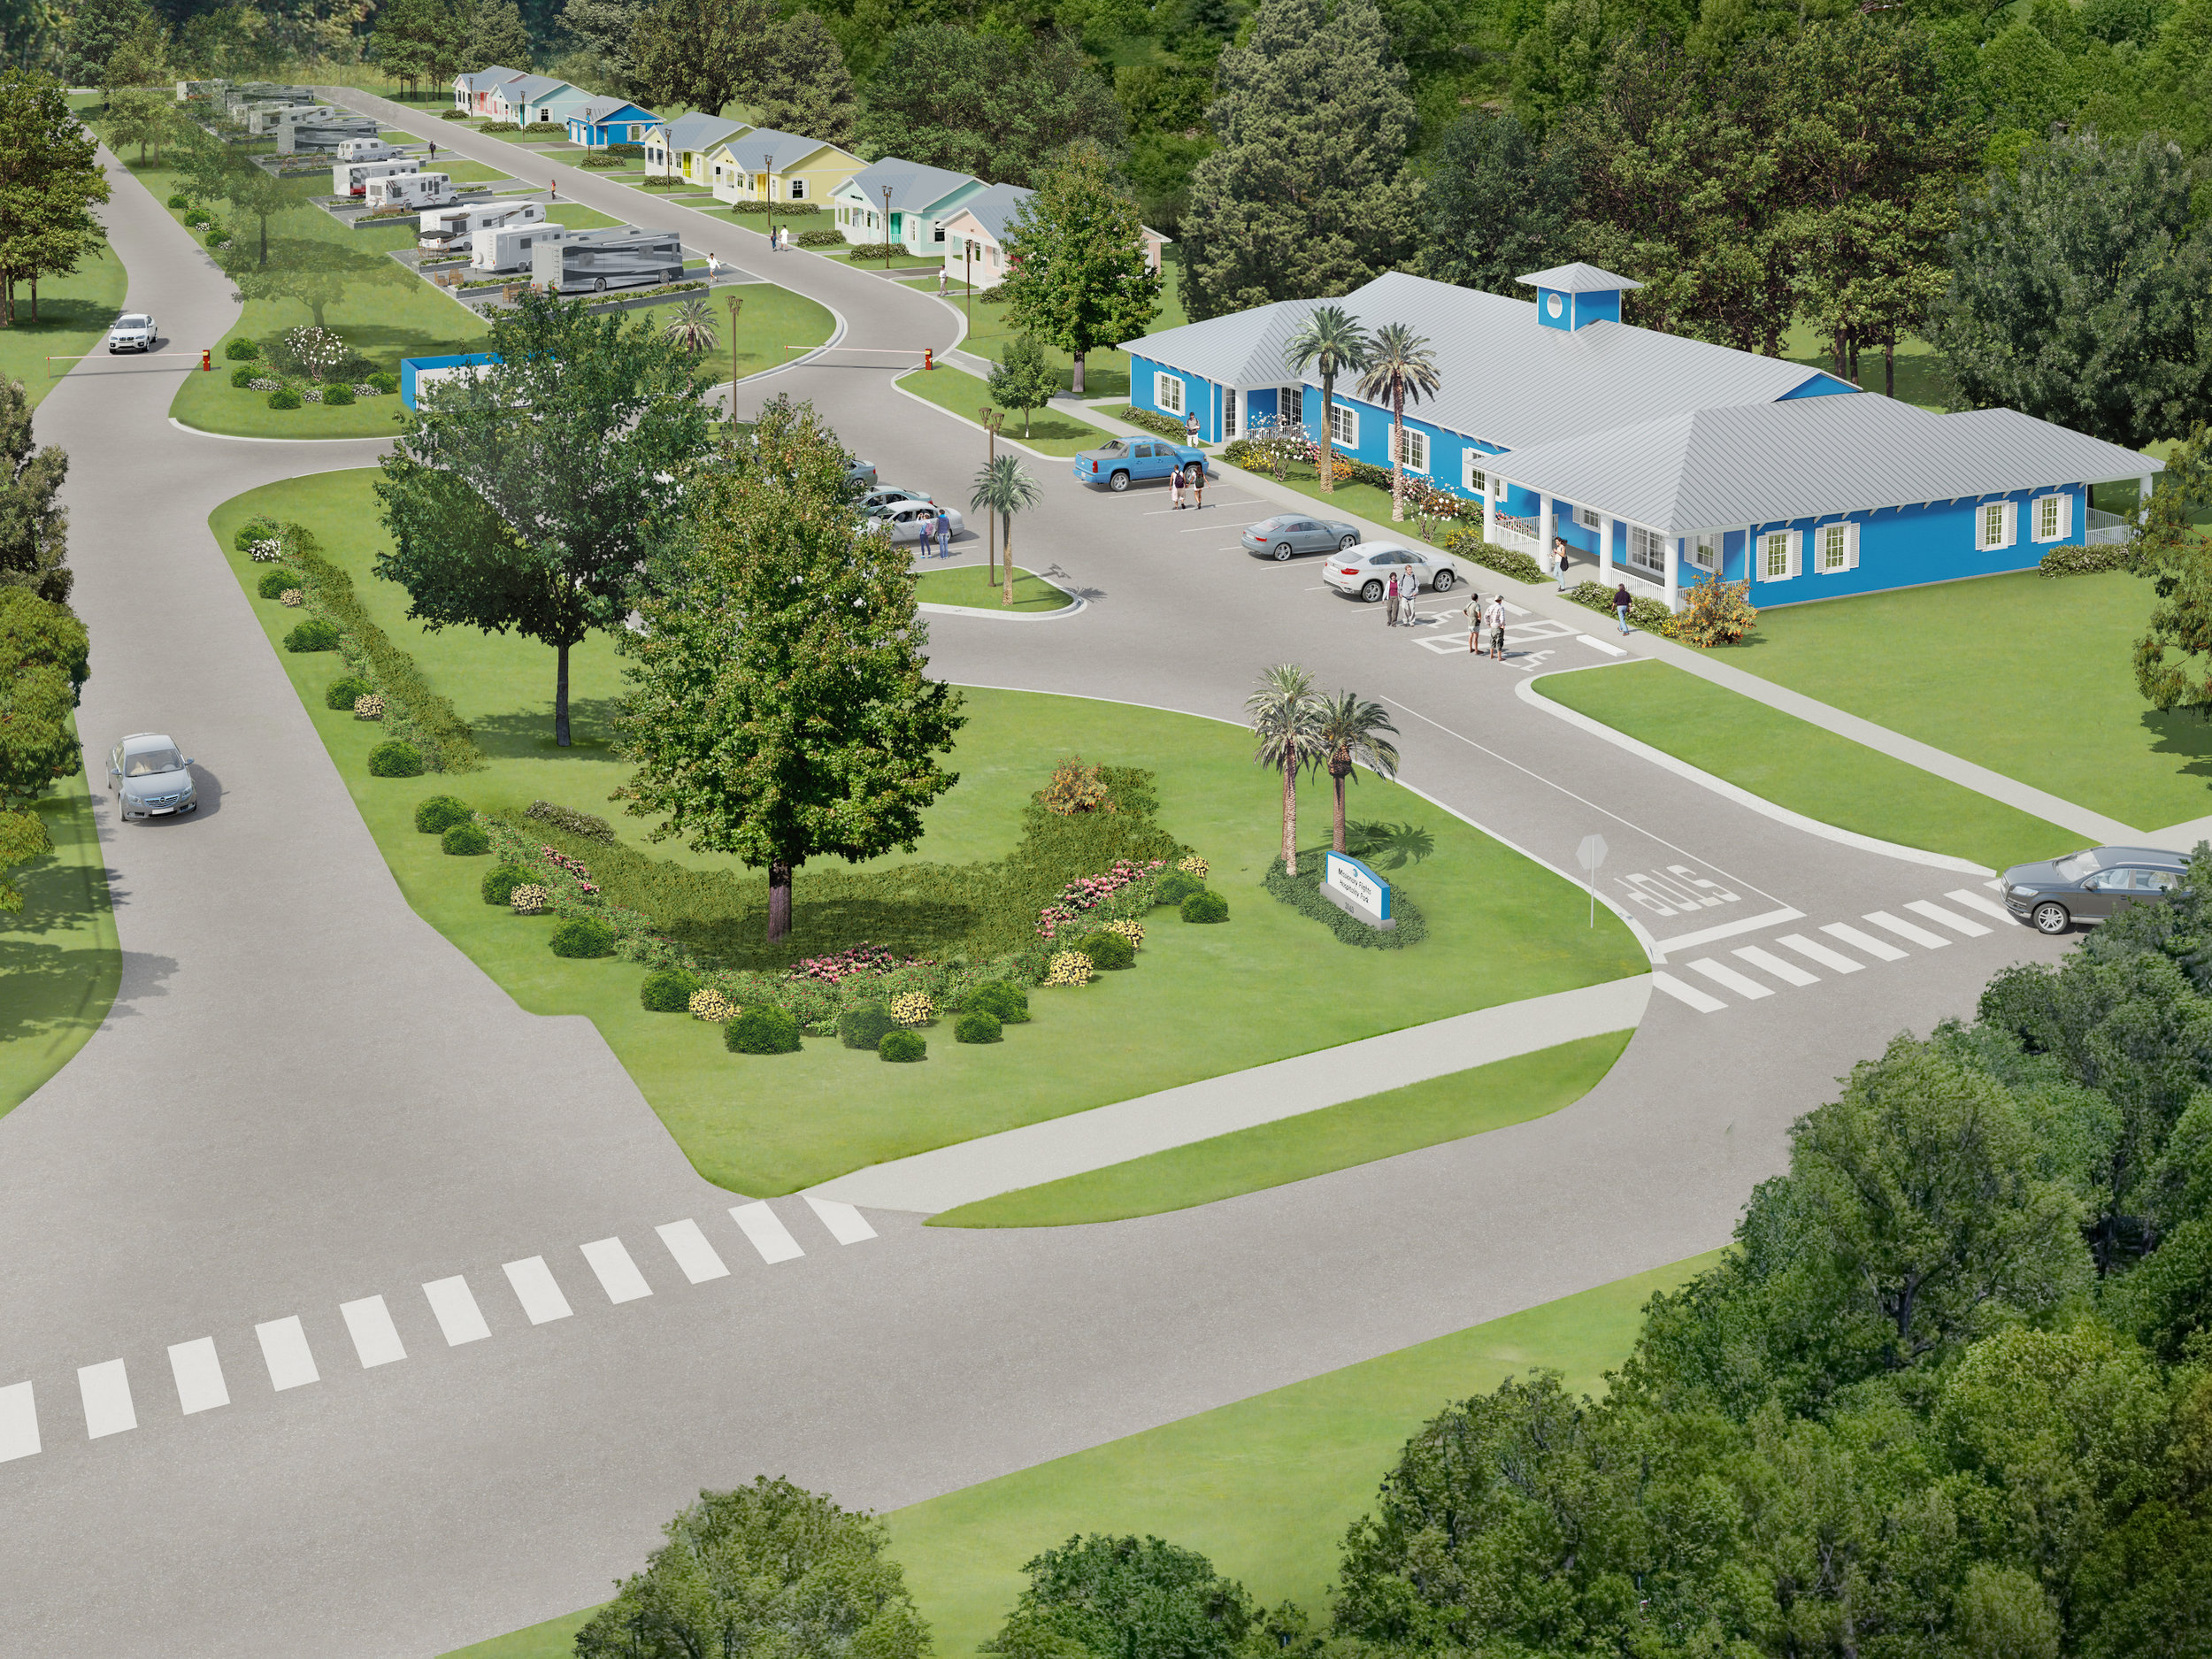 An artistic rendering of the Hospitality Park at Missionary Flights.